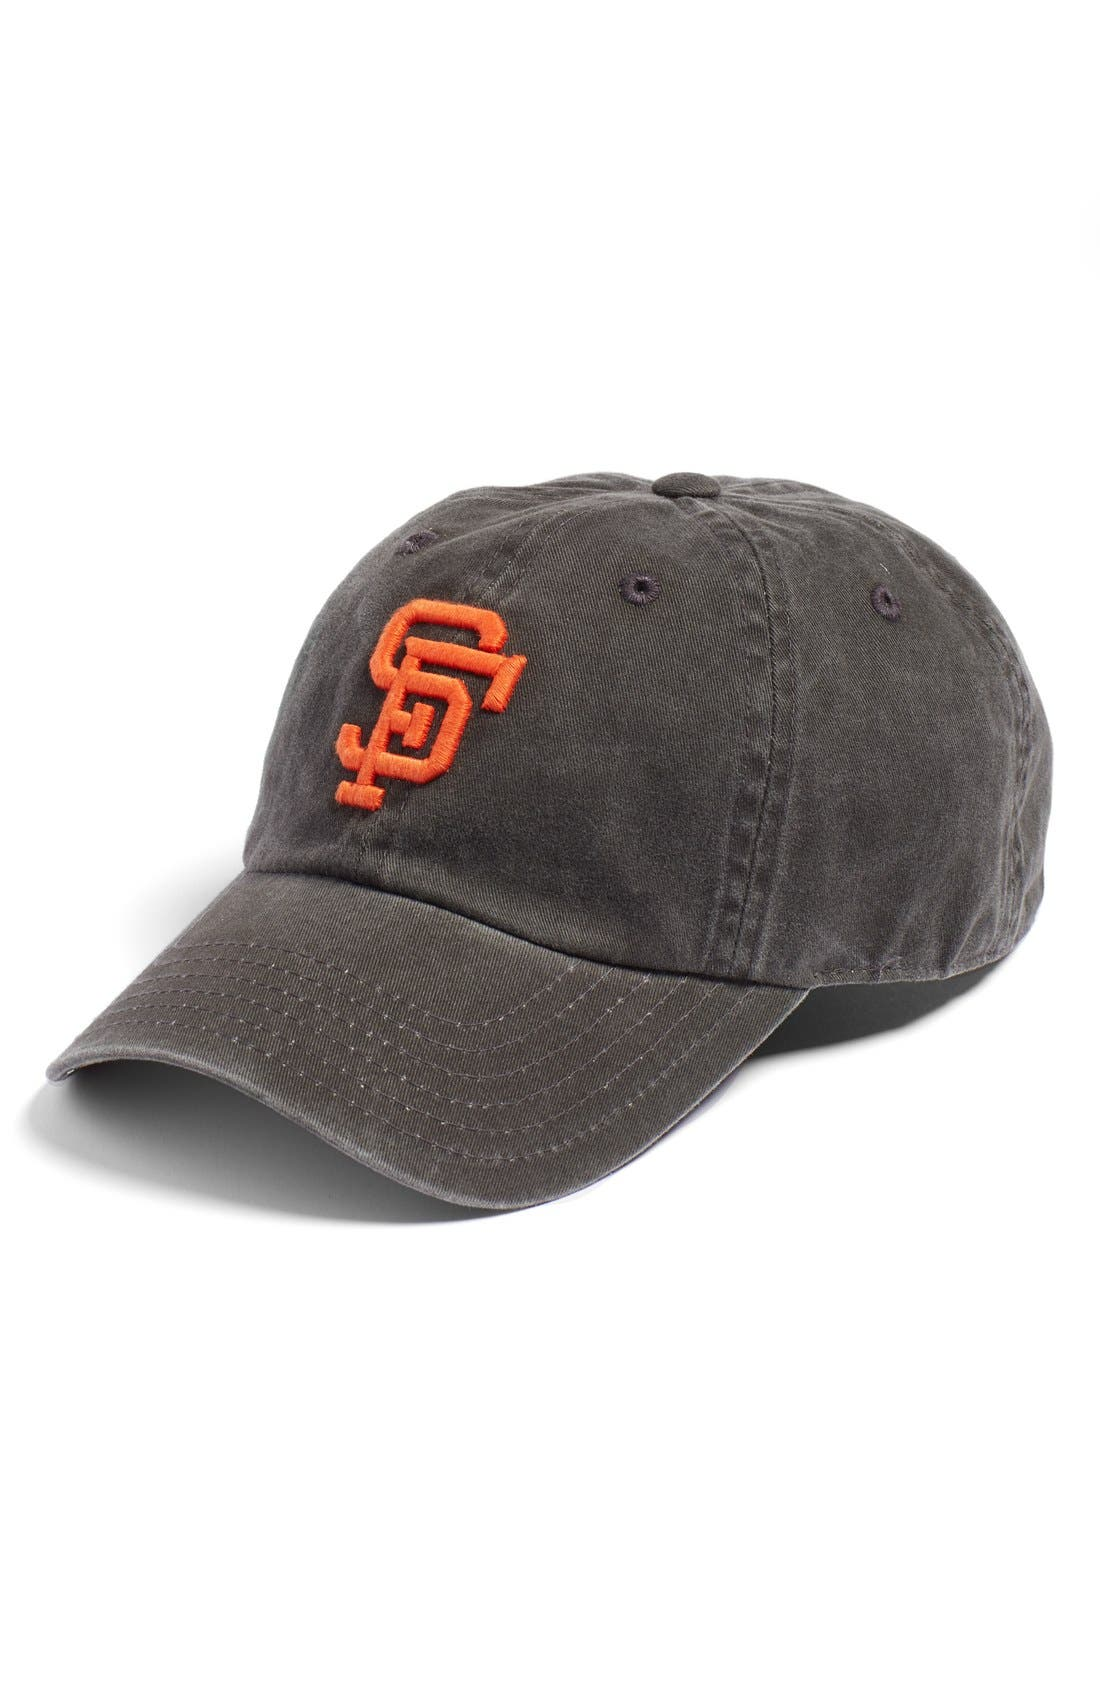 New Raglan San Francisco Giants Baseball Cap,                         Main,                         color, 400